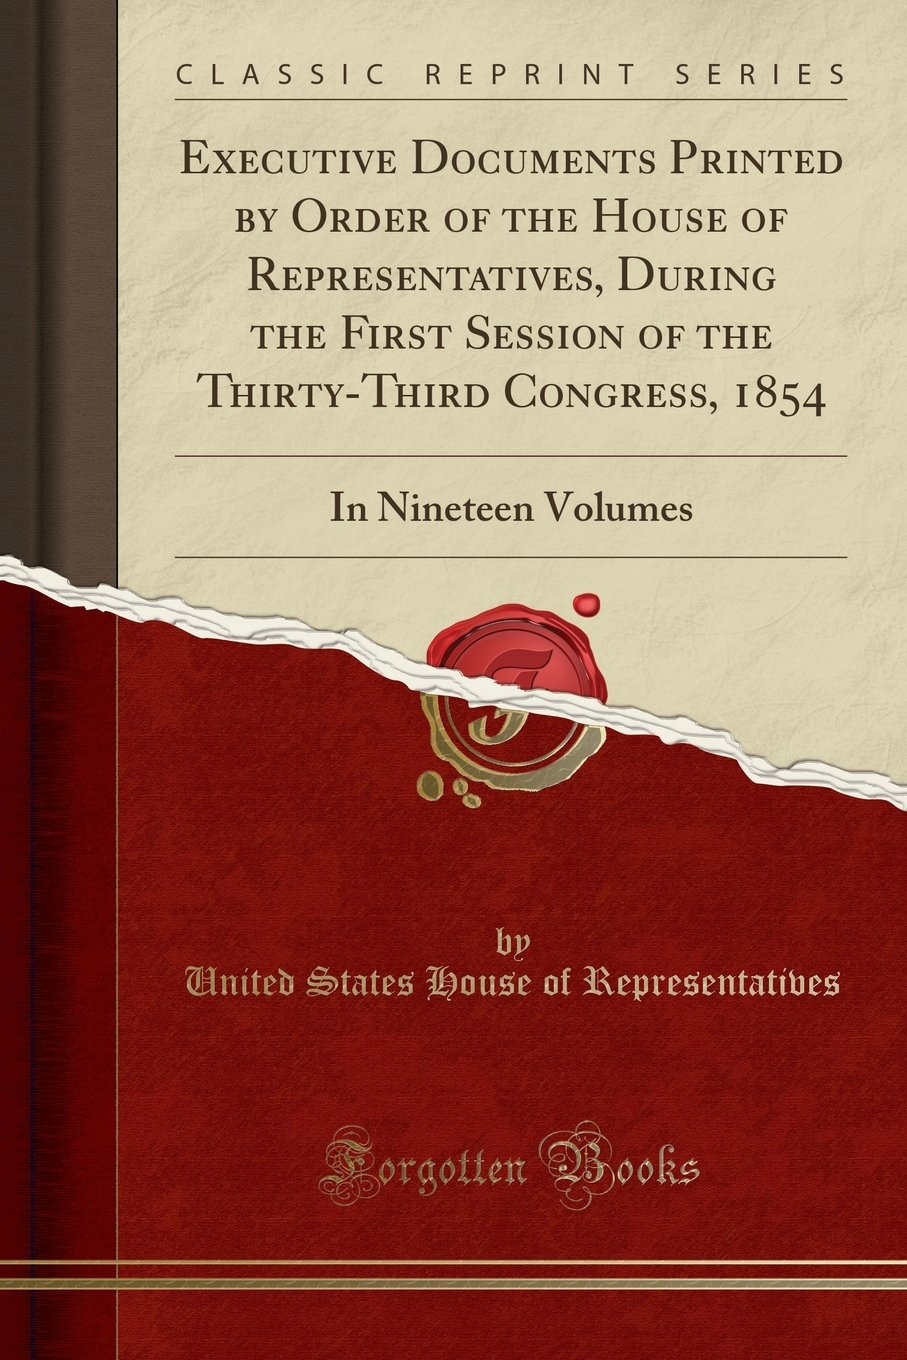 Executive Documents Printed by Order of the House of Representatives, During the First Session of the Thirty-Third Congress, 1854: In Nineteen Volumes (Classic Reprint) pdf